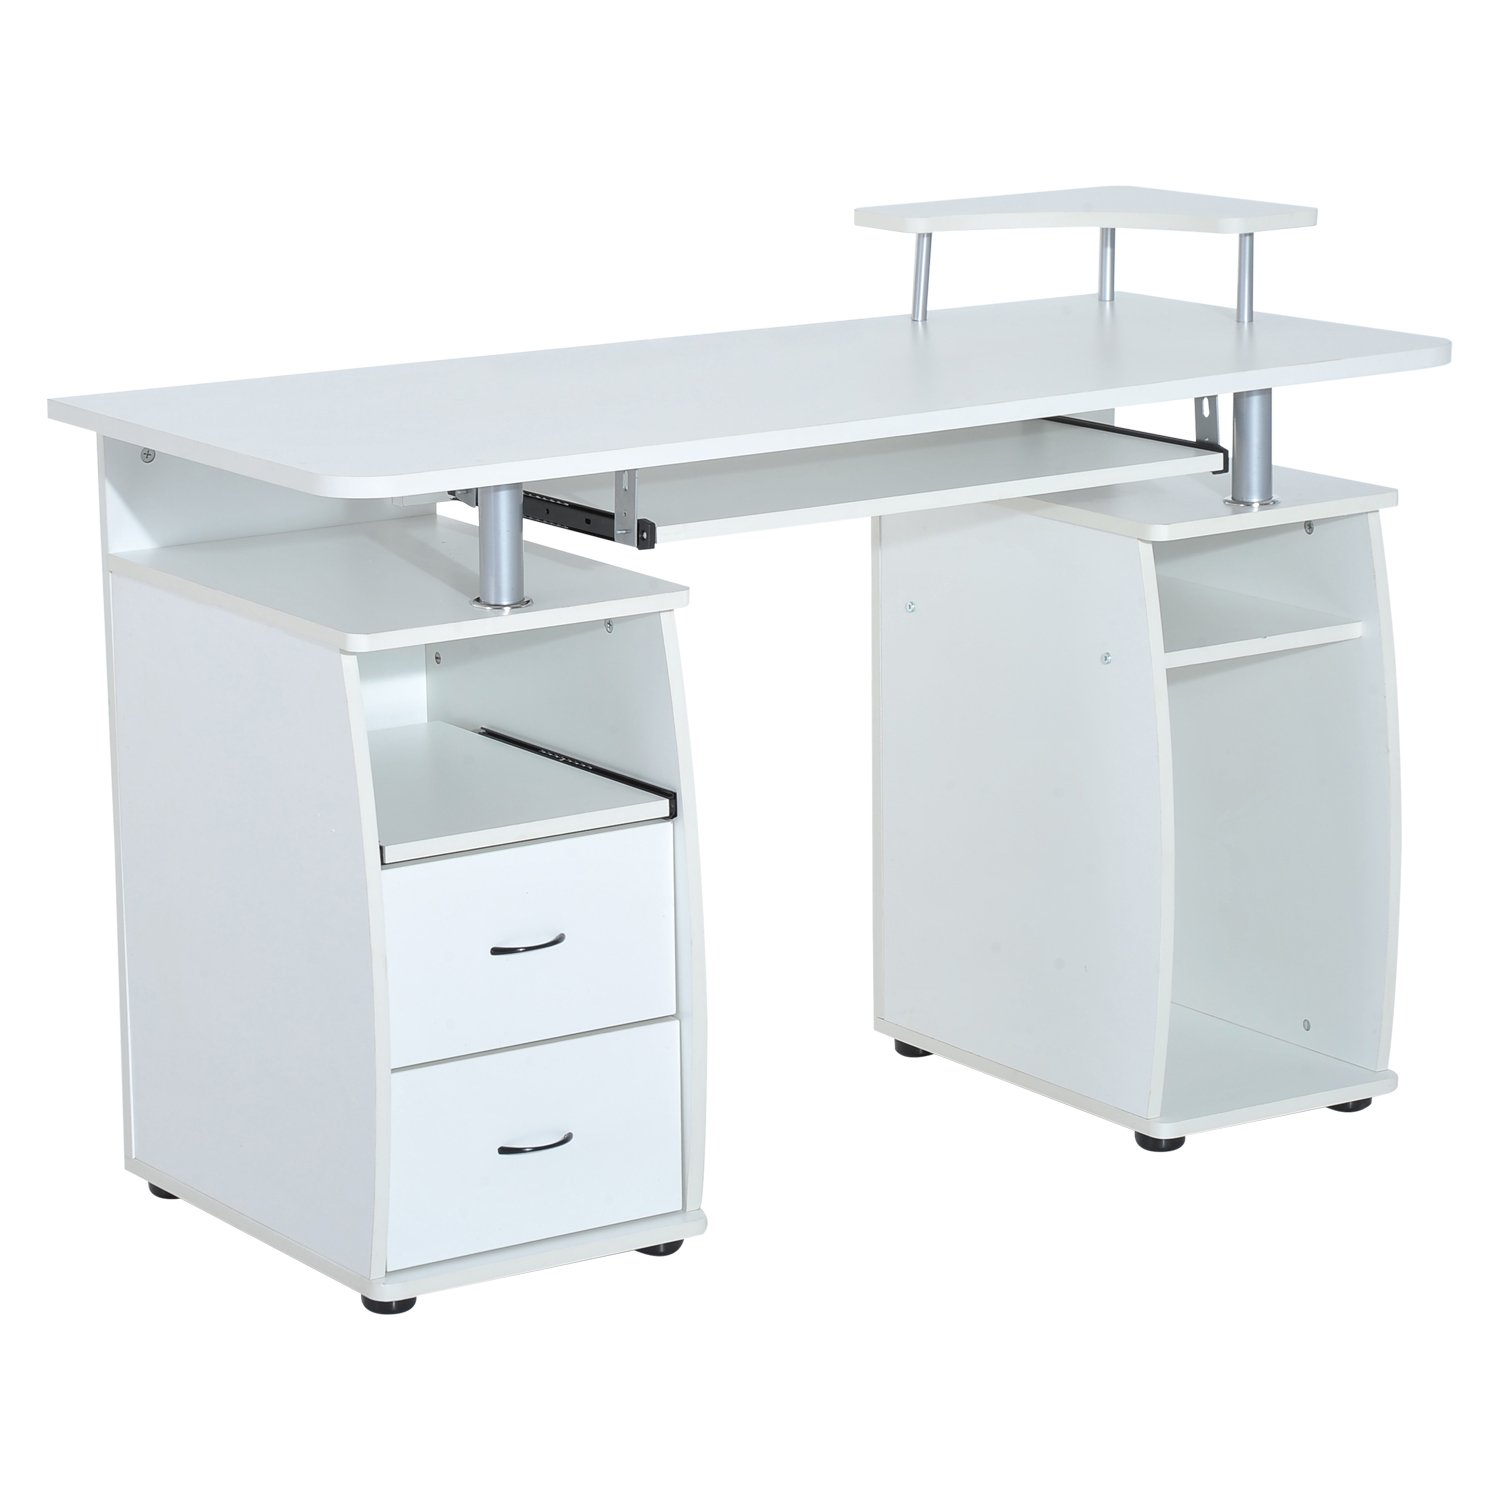 HOMCOM Computer Table Desk PC Desktop Drawer Home Office Furniture White Aosom Canada CA920-011WT0231